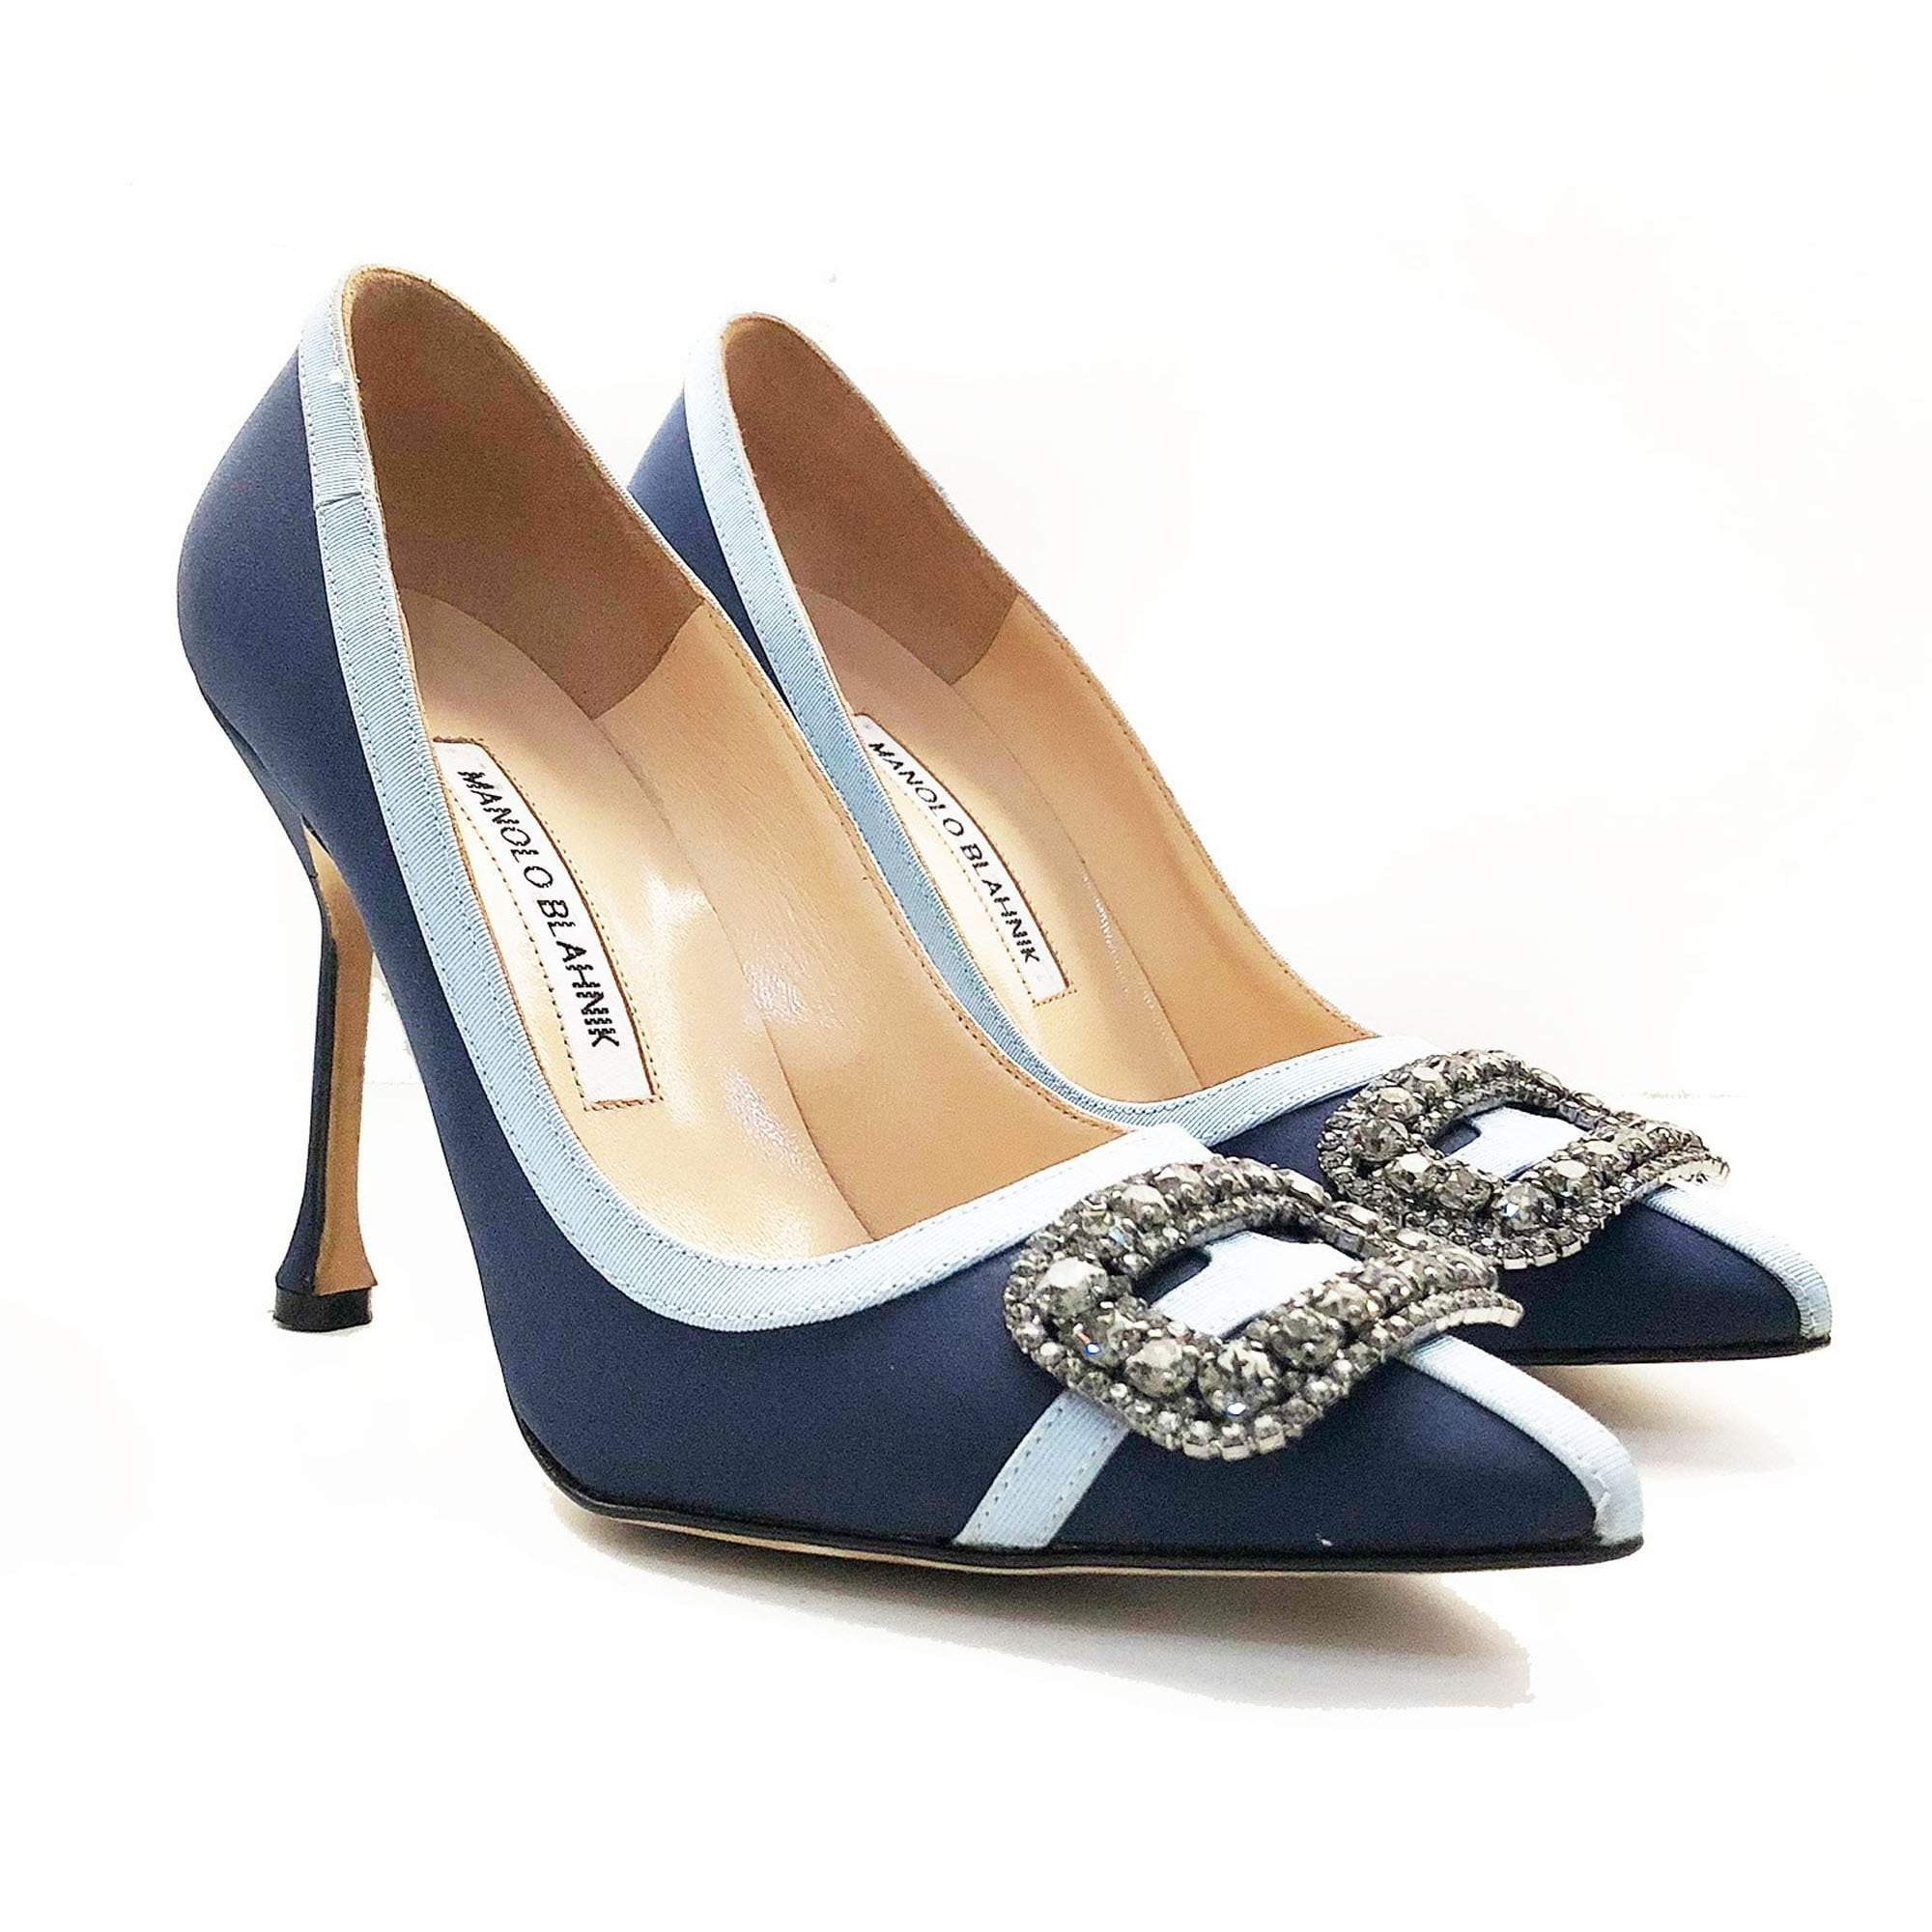 Manolo Blahnik Crystal Embellished Blue Satin Pumps